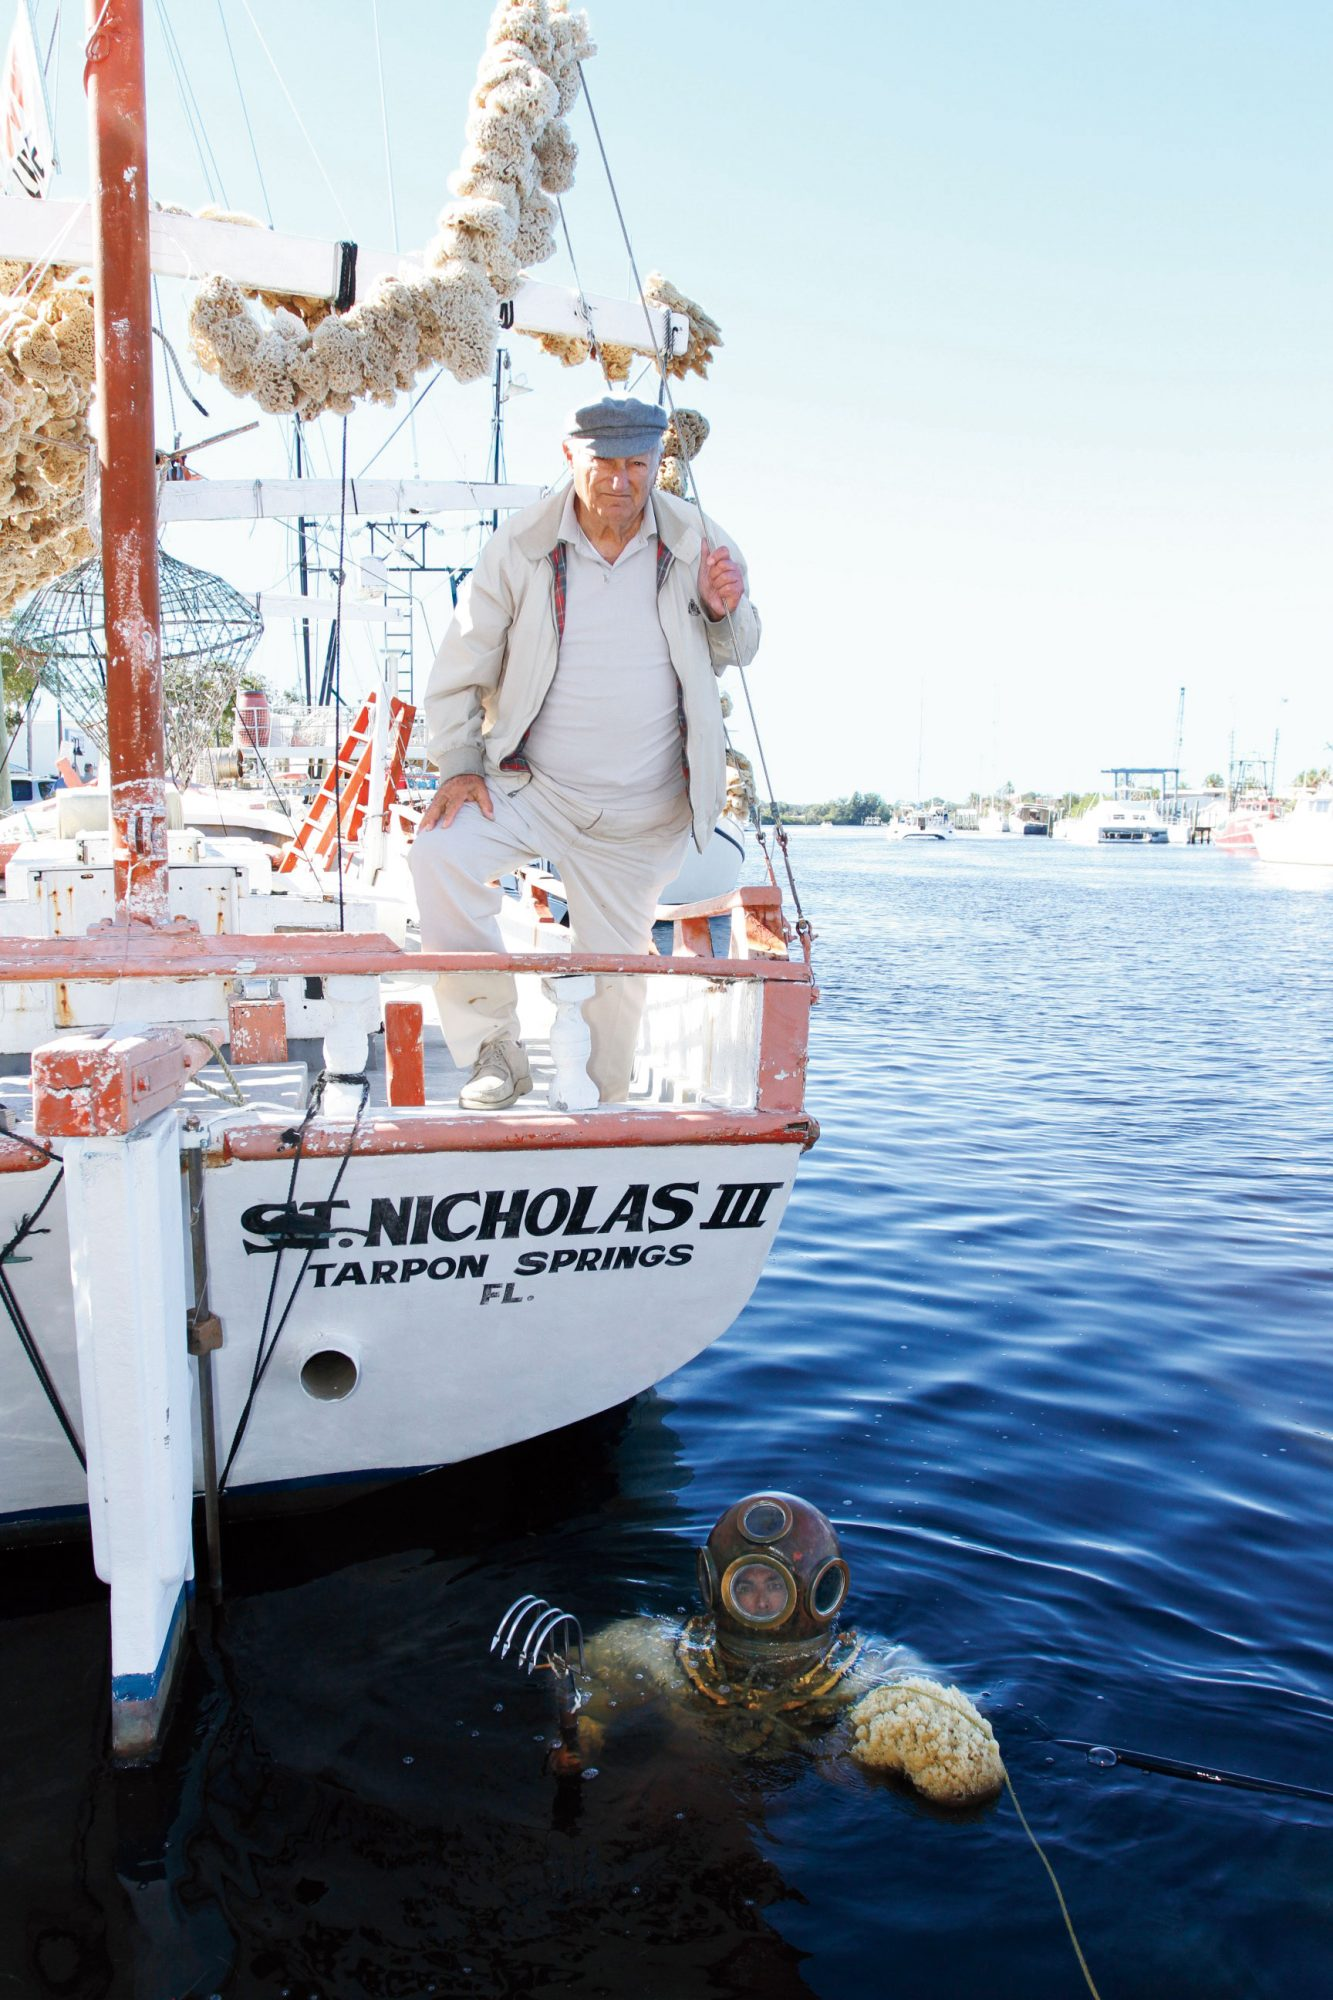 Tarpon Springs Man on Boat